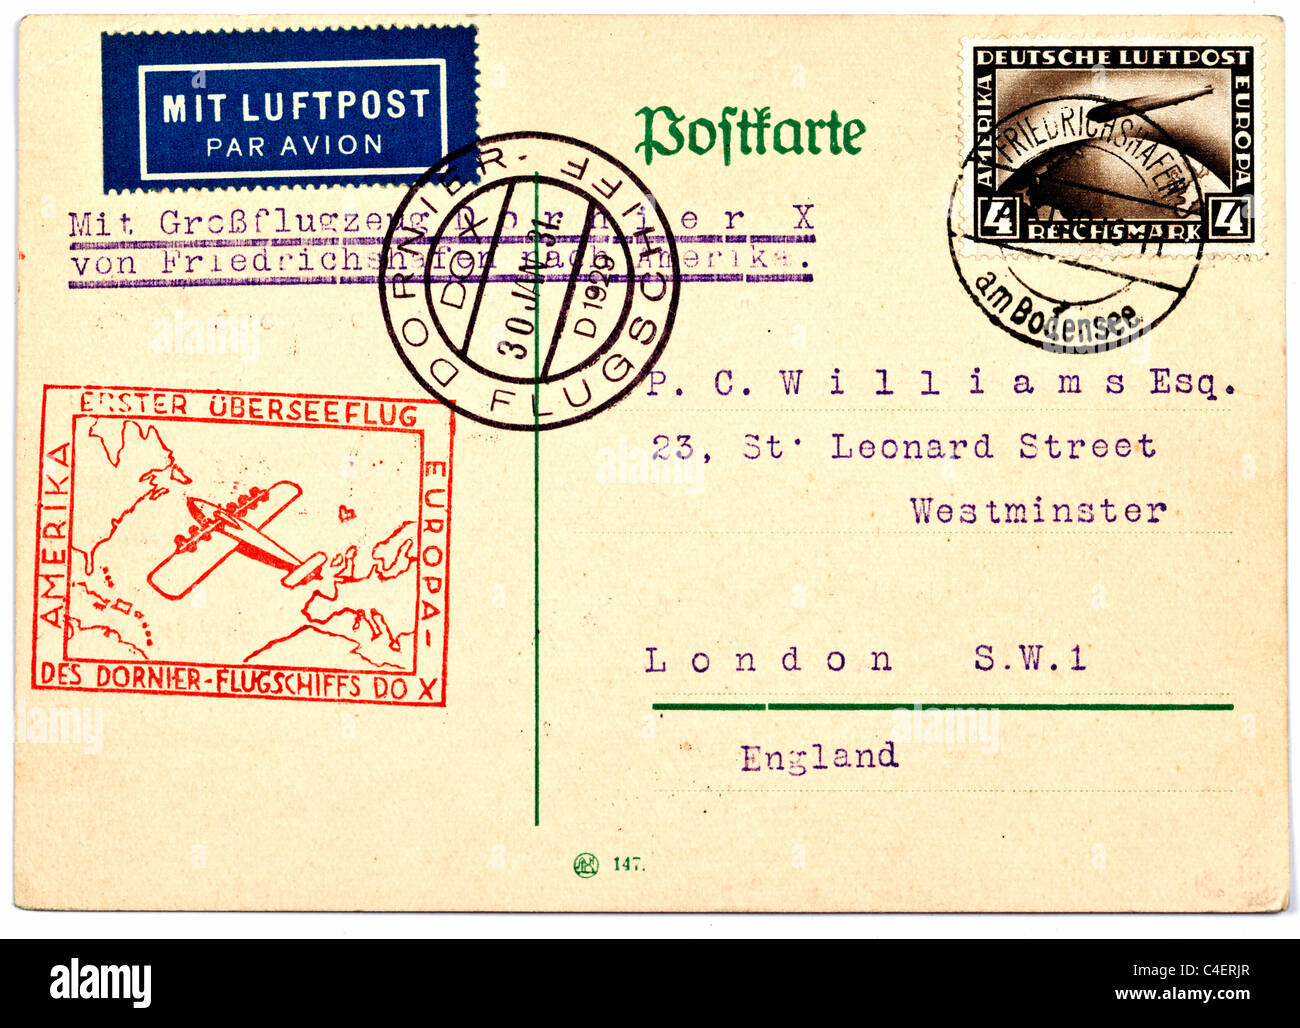 A vintage postcard sent to the addressee in England on the first German Dornier flight Dated 30.1.31 - Stock Image